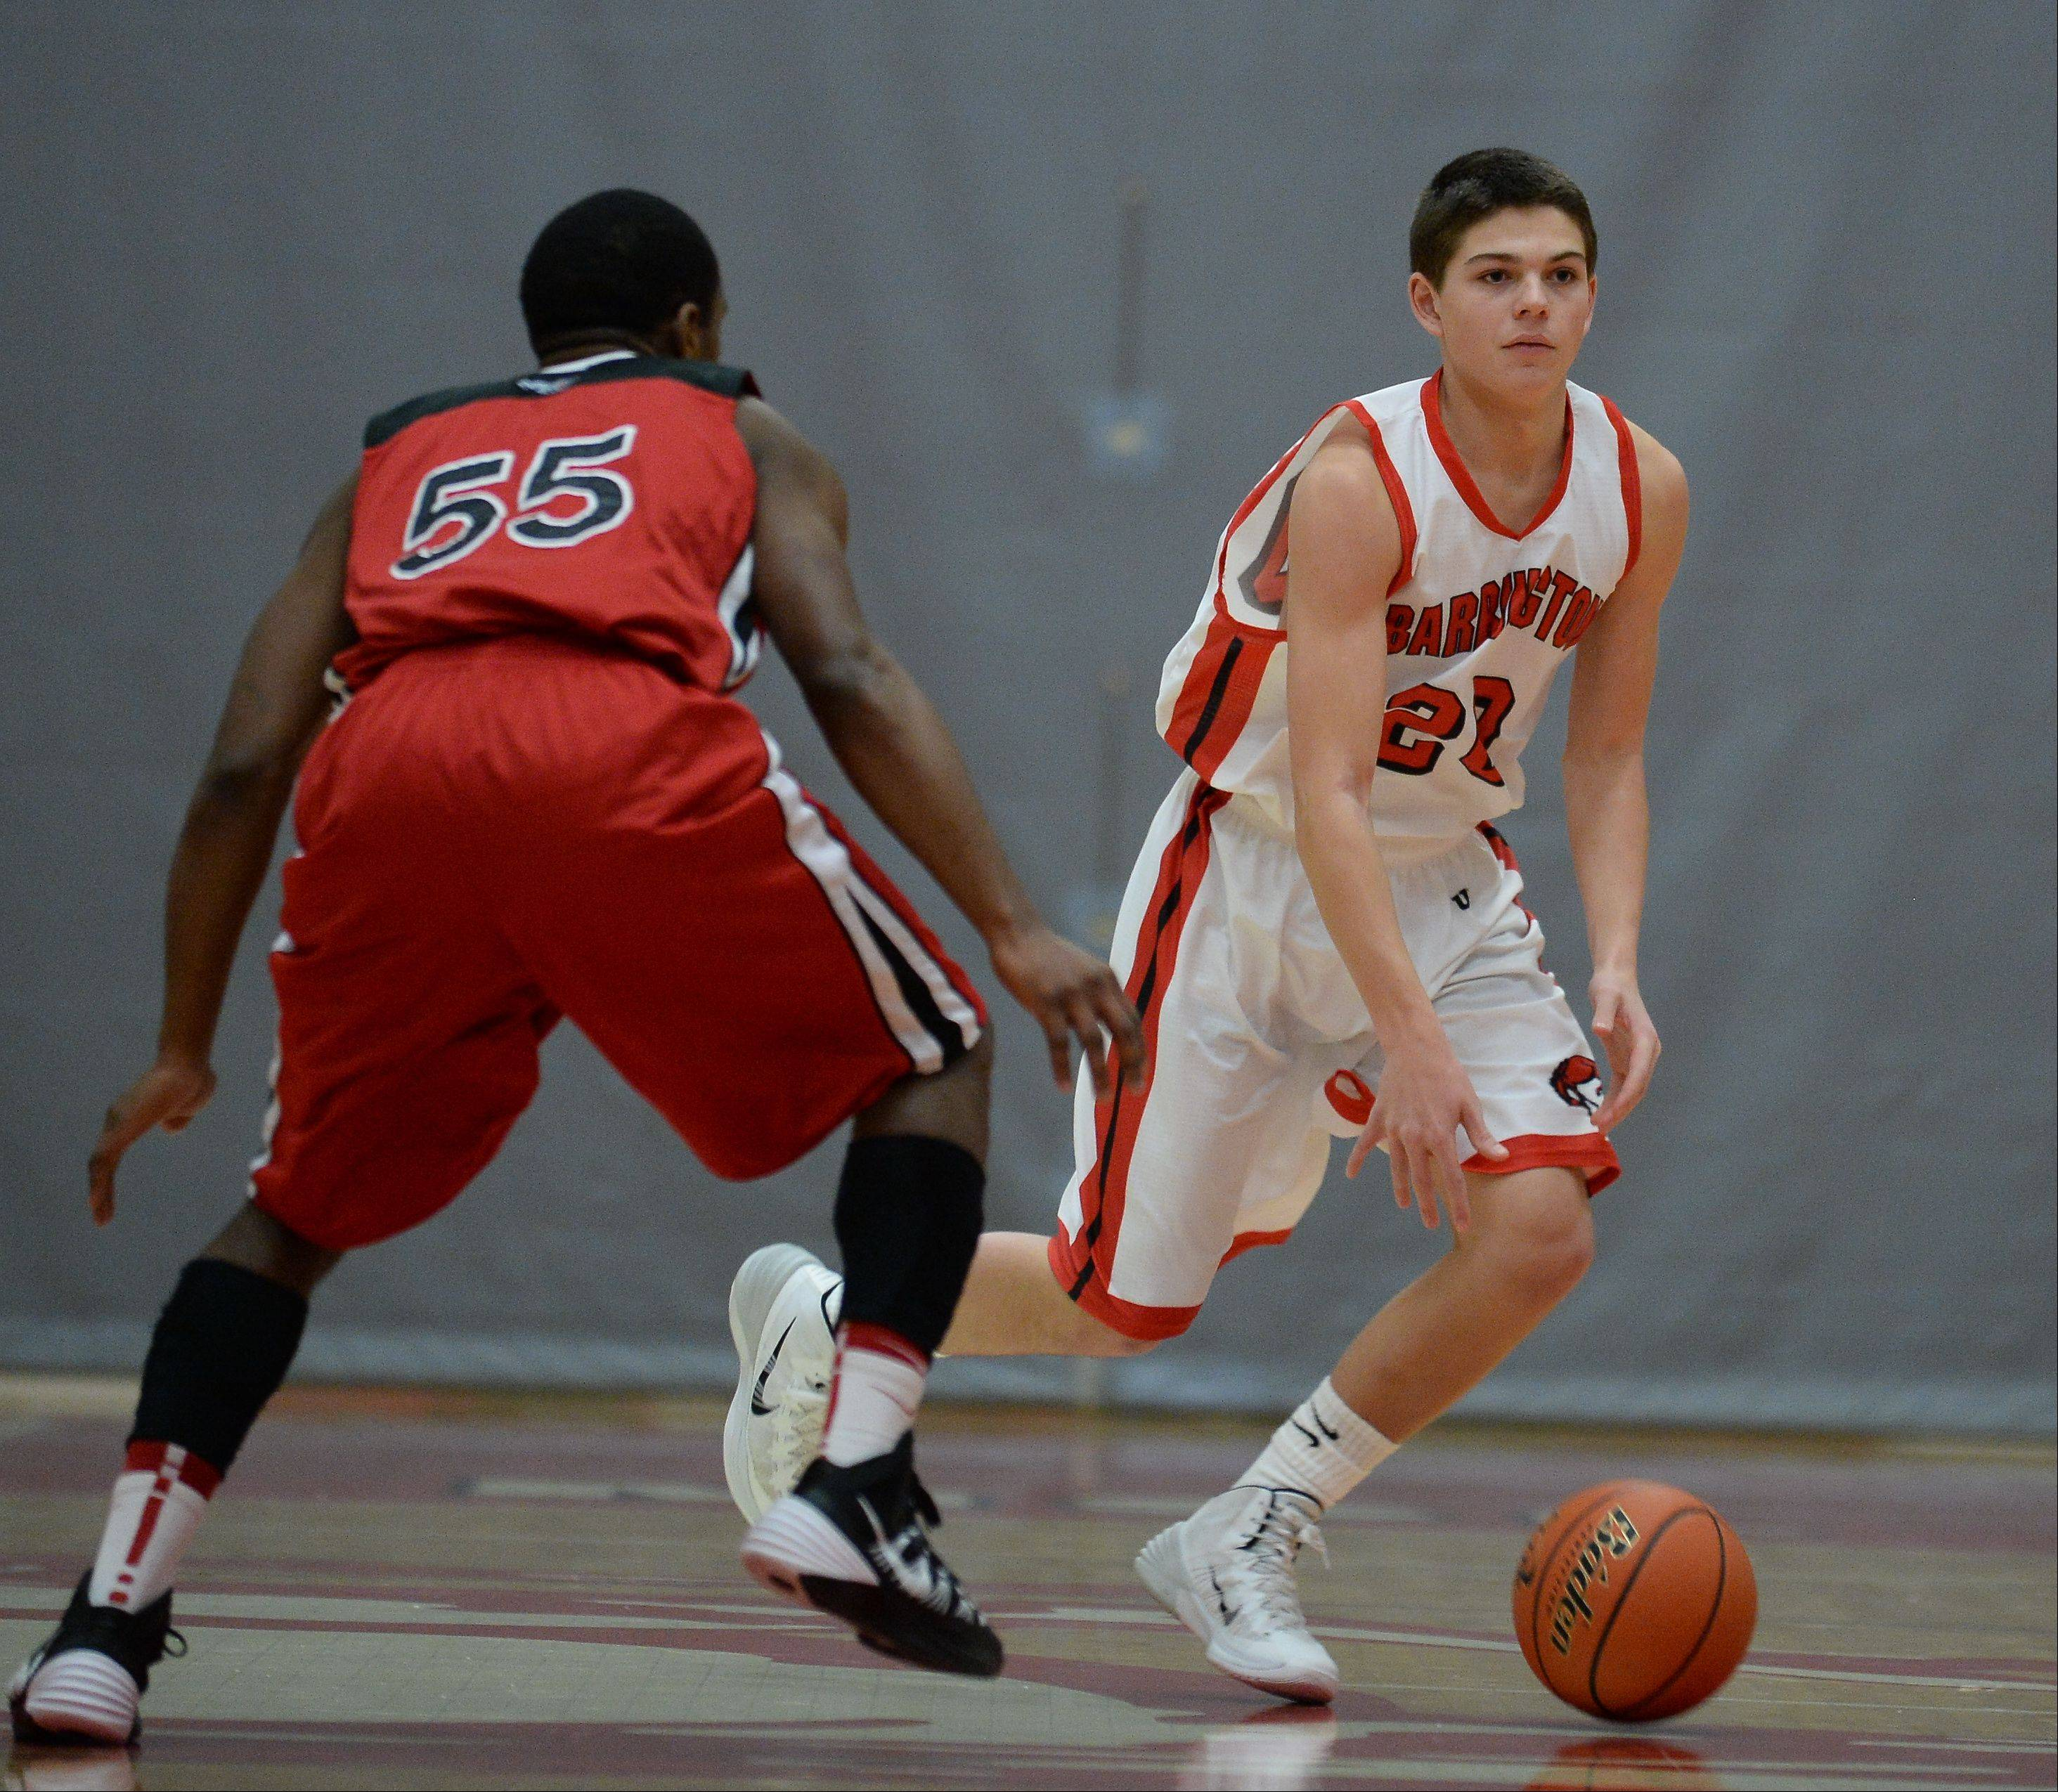 Photos from the Barrington vs. Grant boys basketball game on Friday, January 3rd, in Barrington.